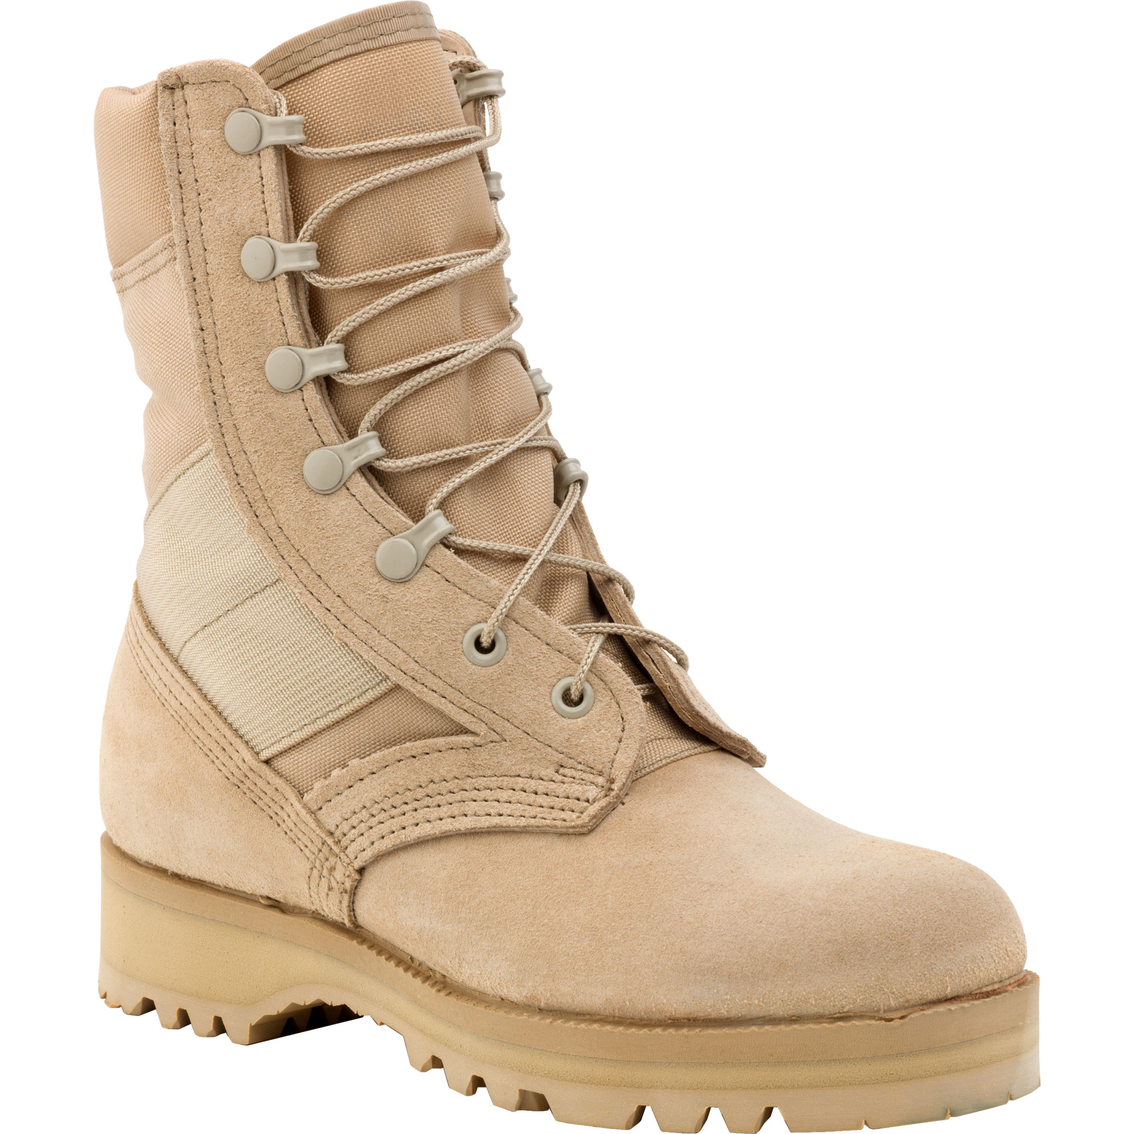 Military Discounts On Top Brands, Women's Clothing, Fitness ...